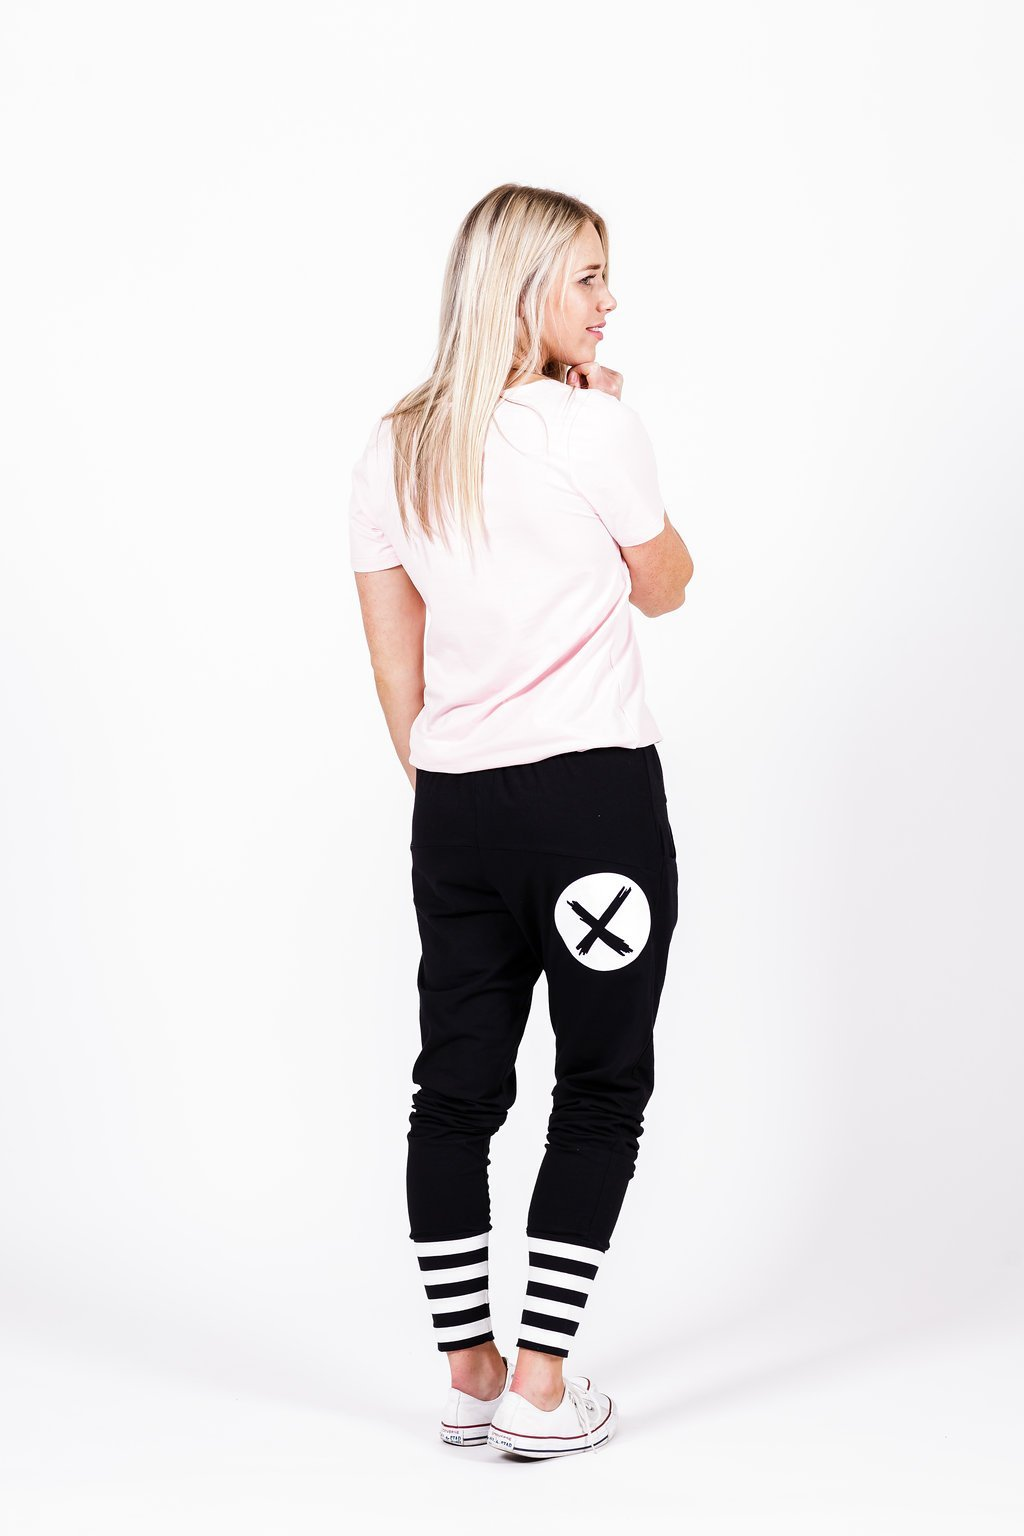 APARTMENT PANTS - Black with white X spot print and stripe cuffs